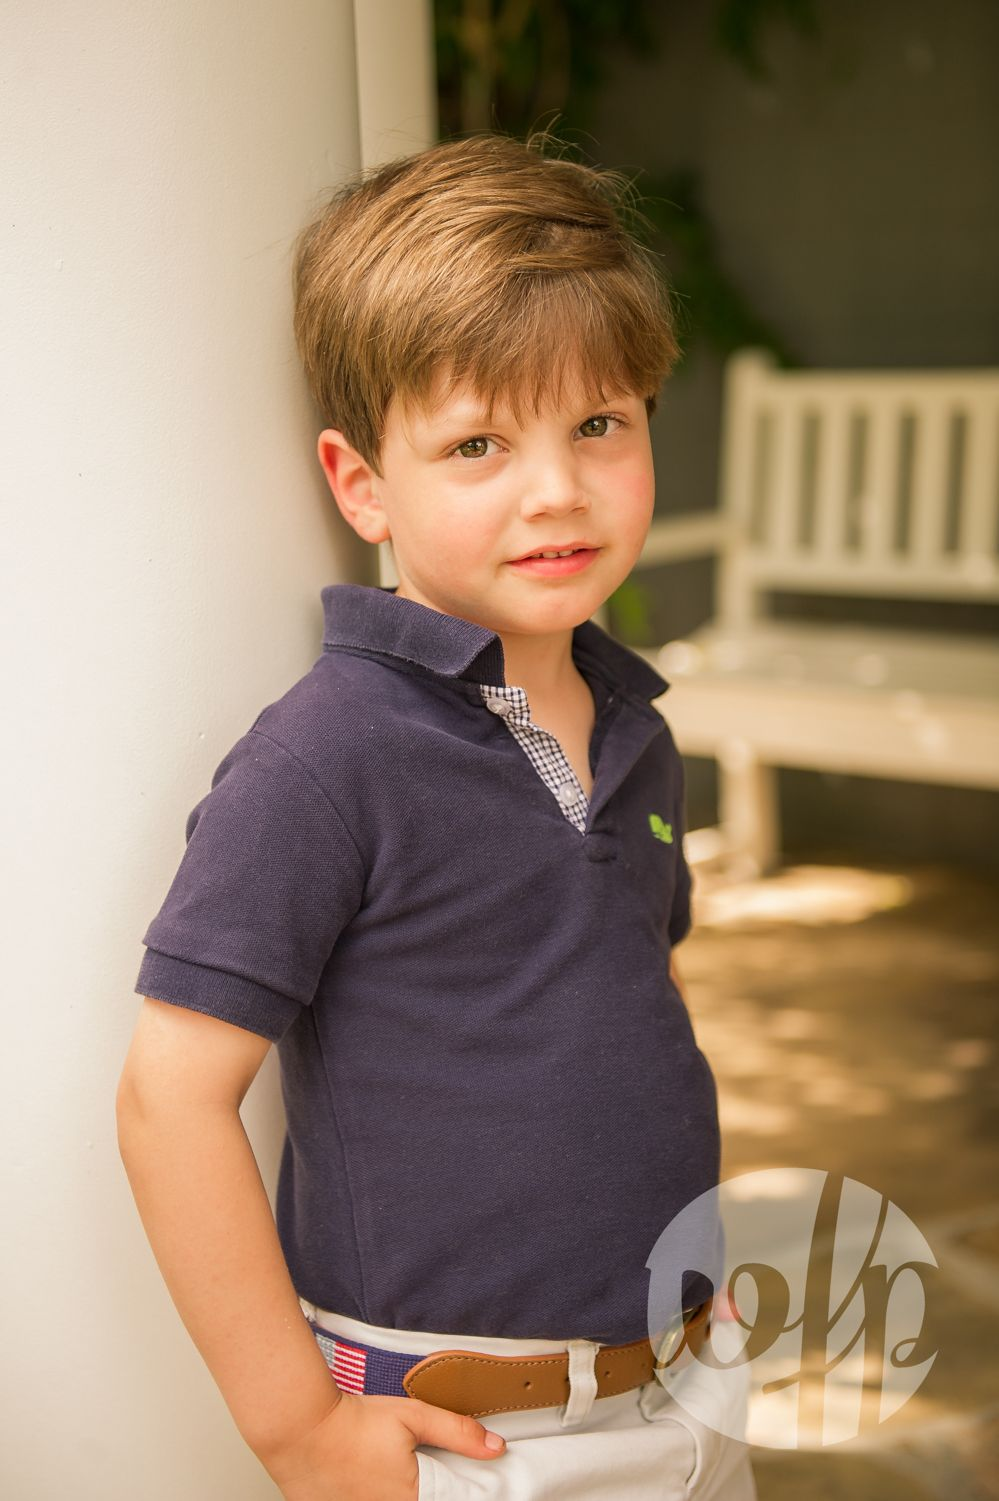 4 Year Boy Bedroom Decorating Ideas: Handsome 4 Year Old Boy Photographed At His Family's Lake